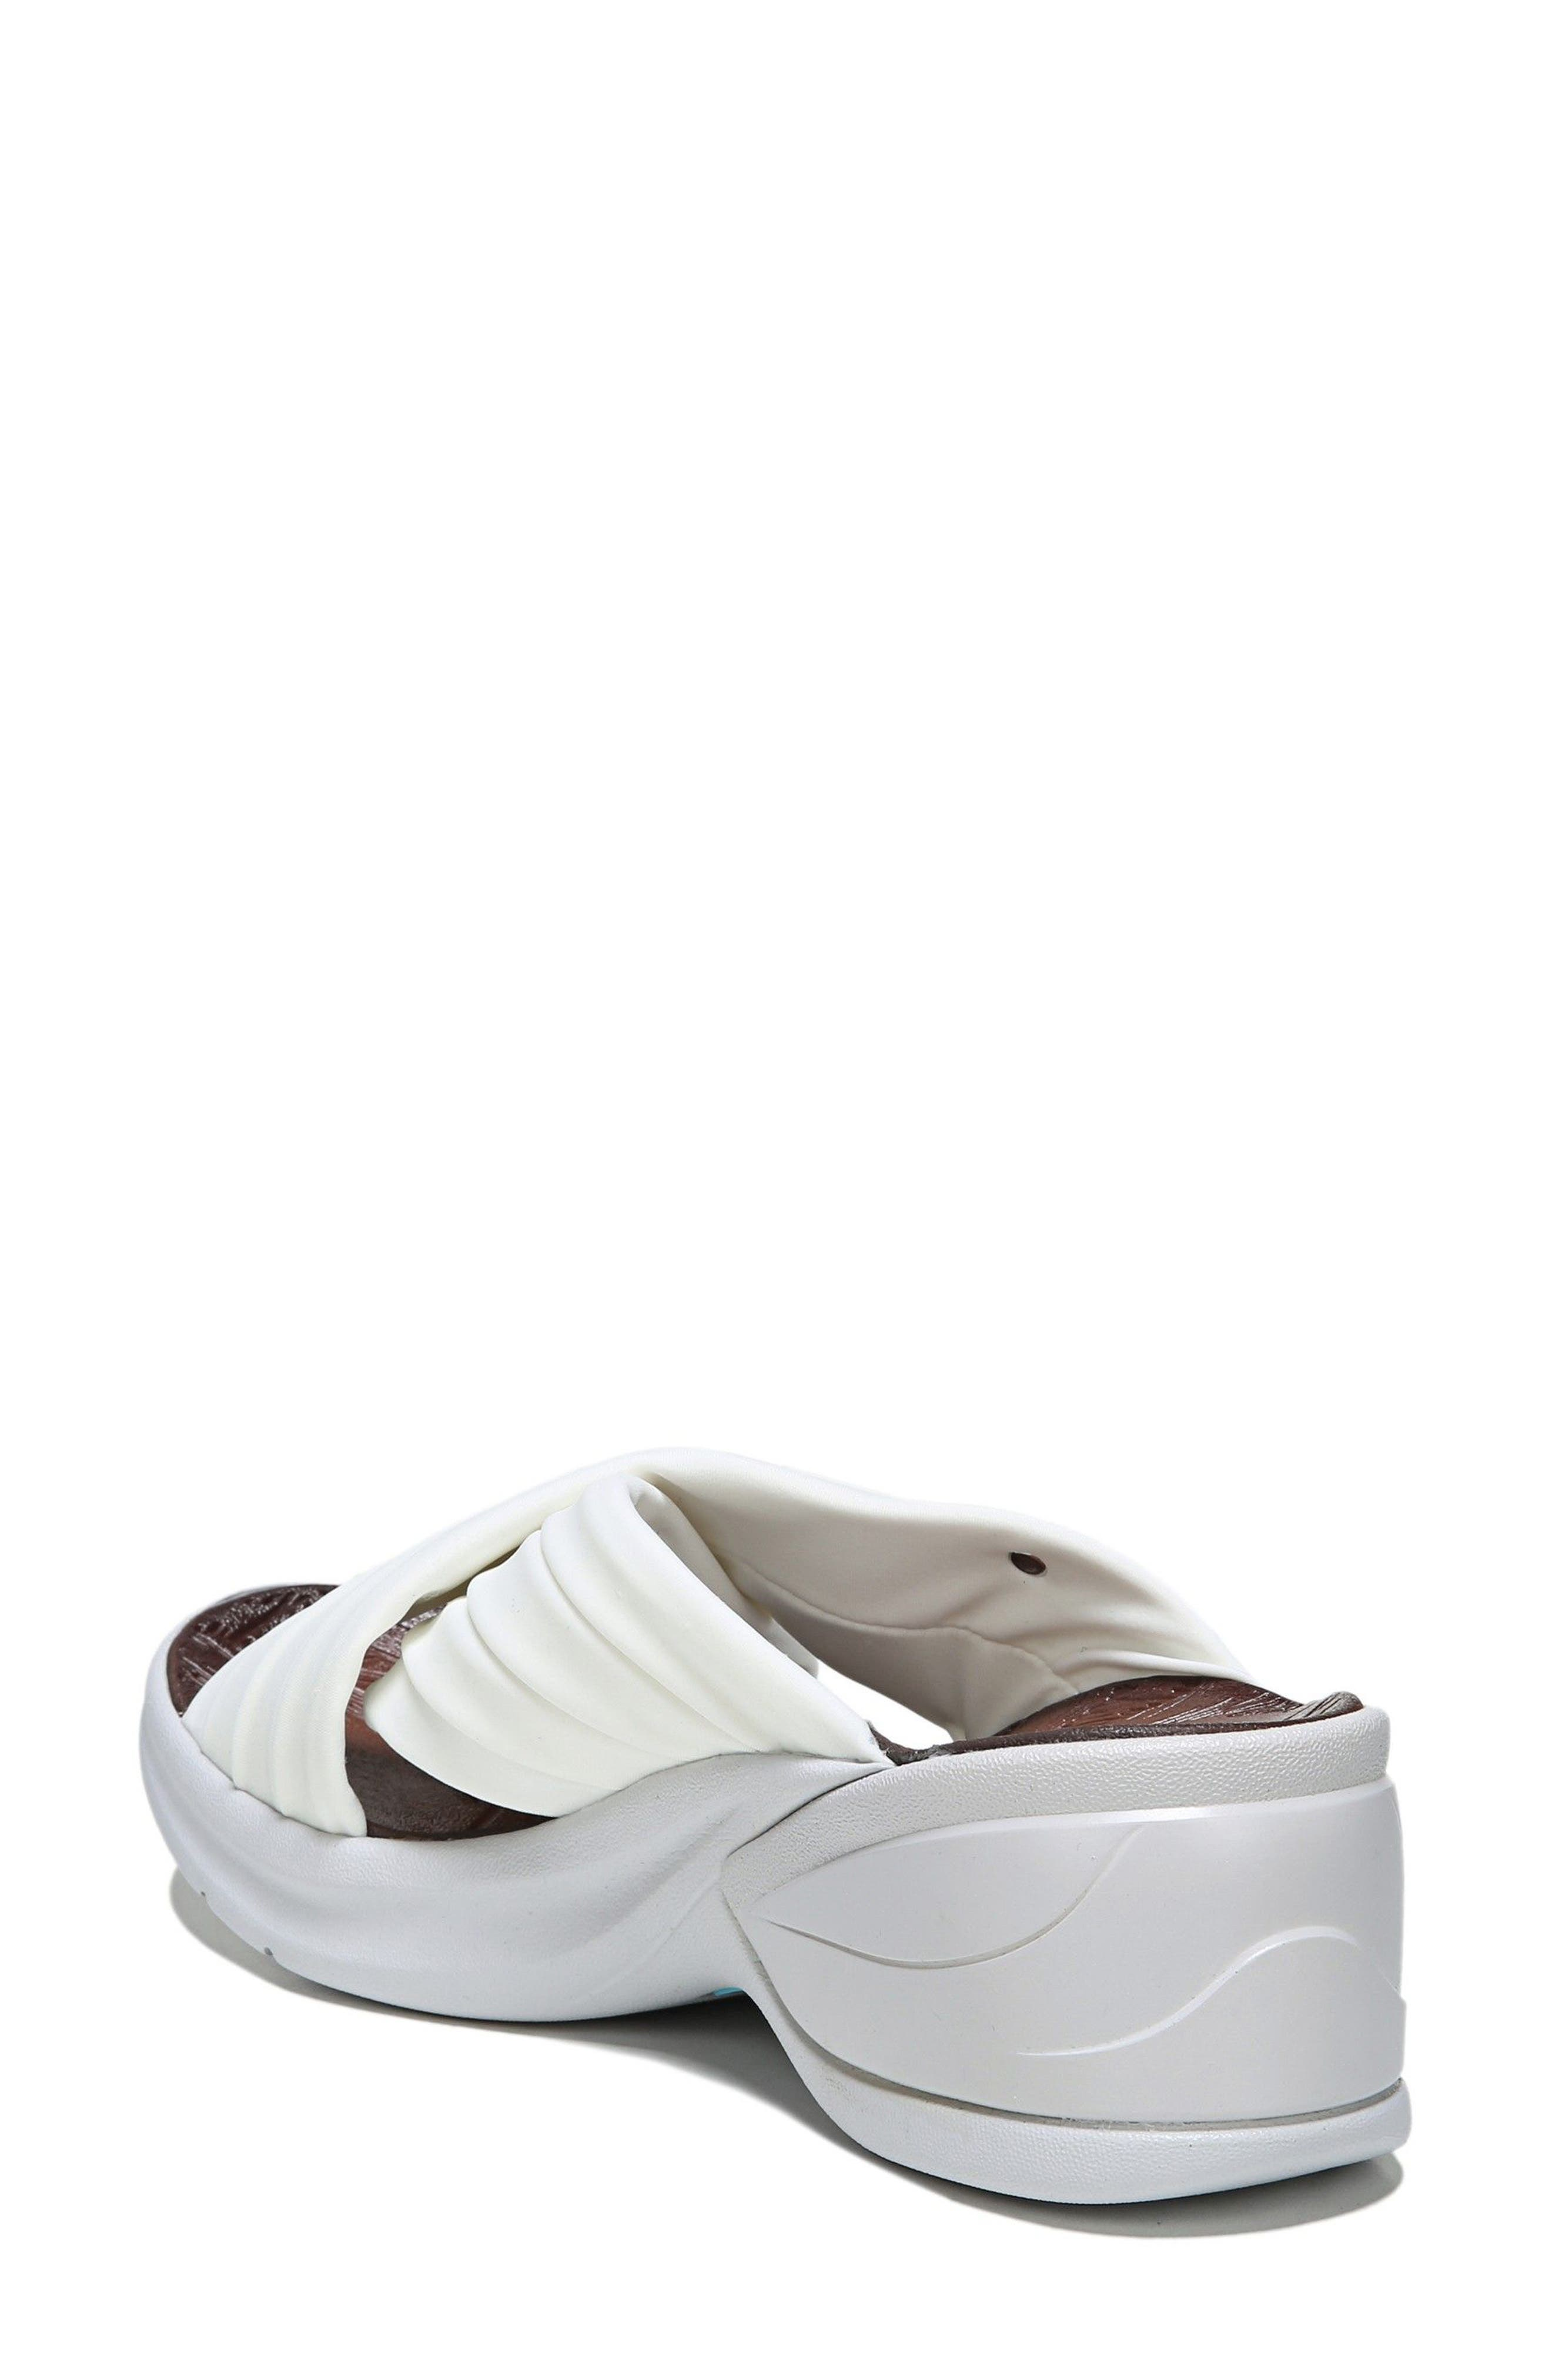 Knockout Slide Sandal,                             Alternate thumbnail 2, color,                             WHITE FABRIC